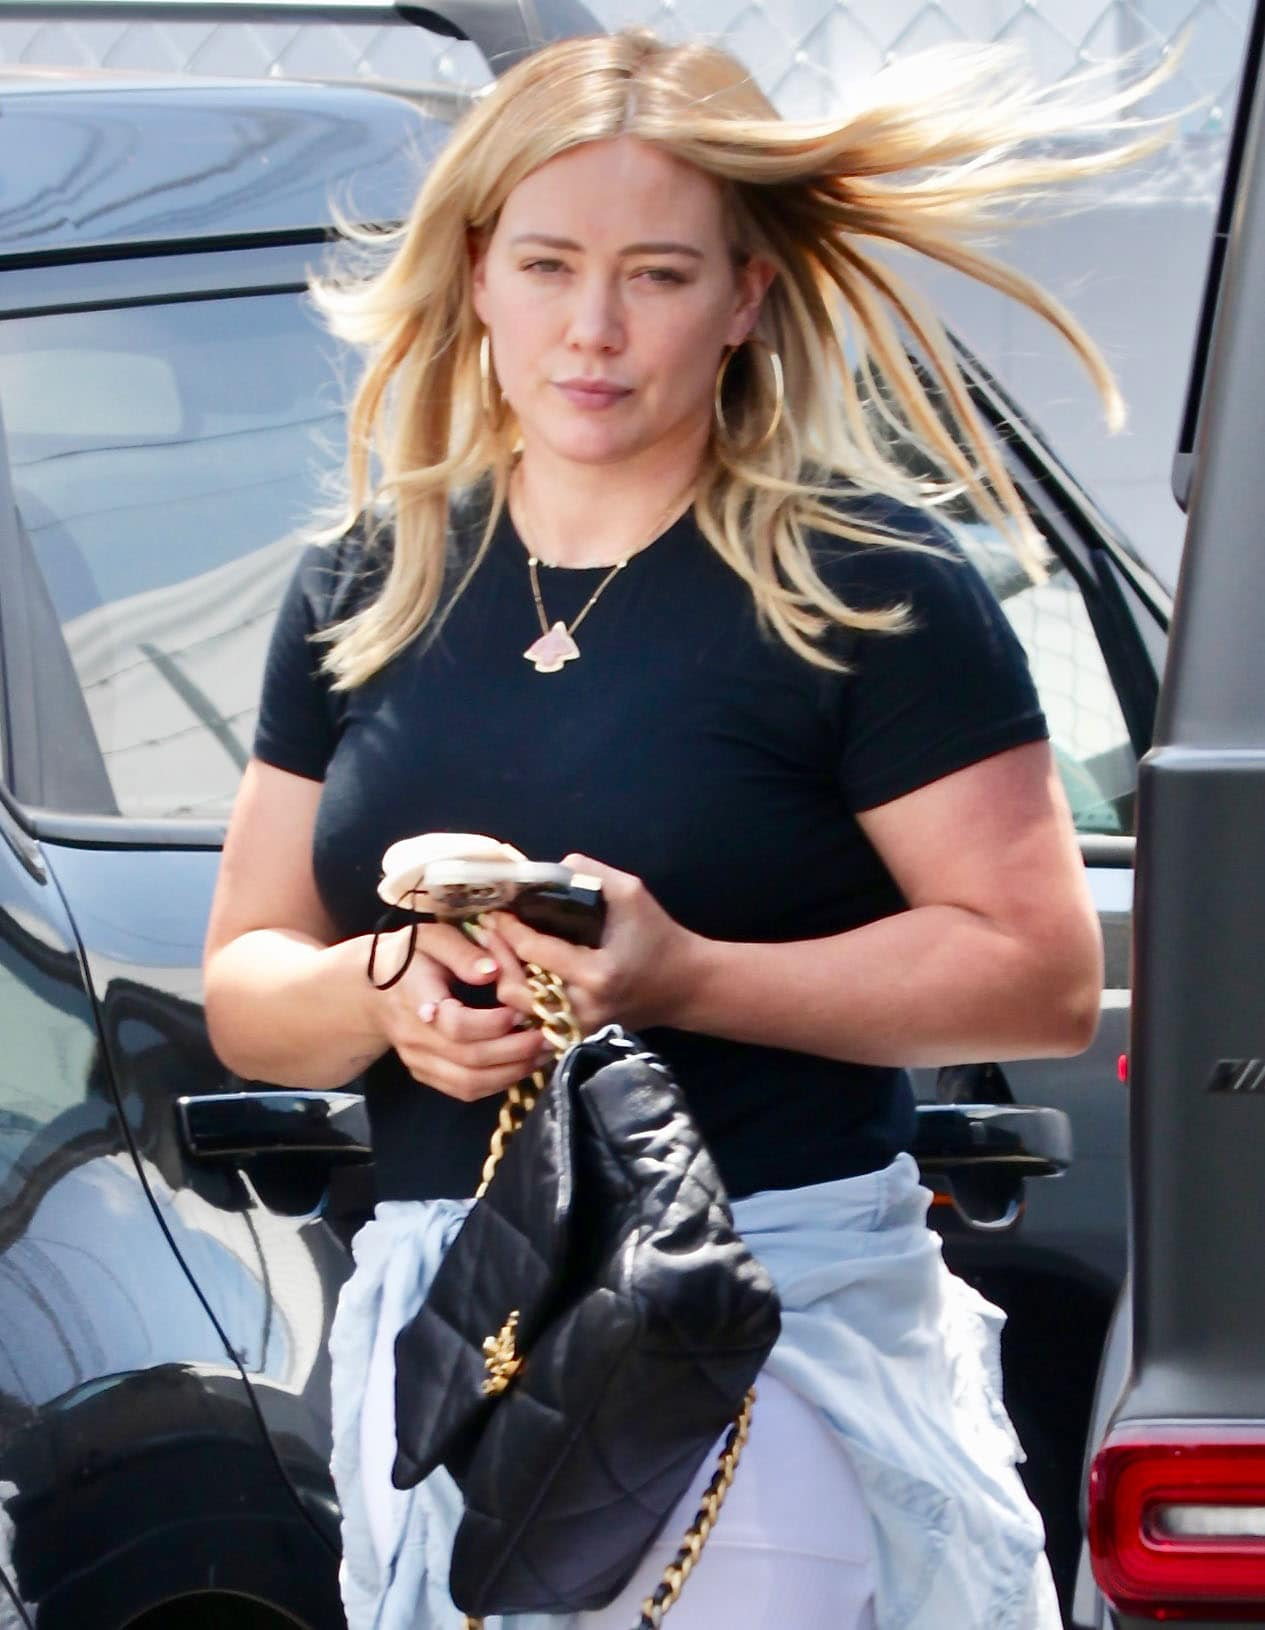 Hilary Duff styles her workout look with hoop earrings, a gold necklace, and a Chanel bag